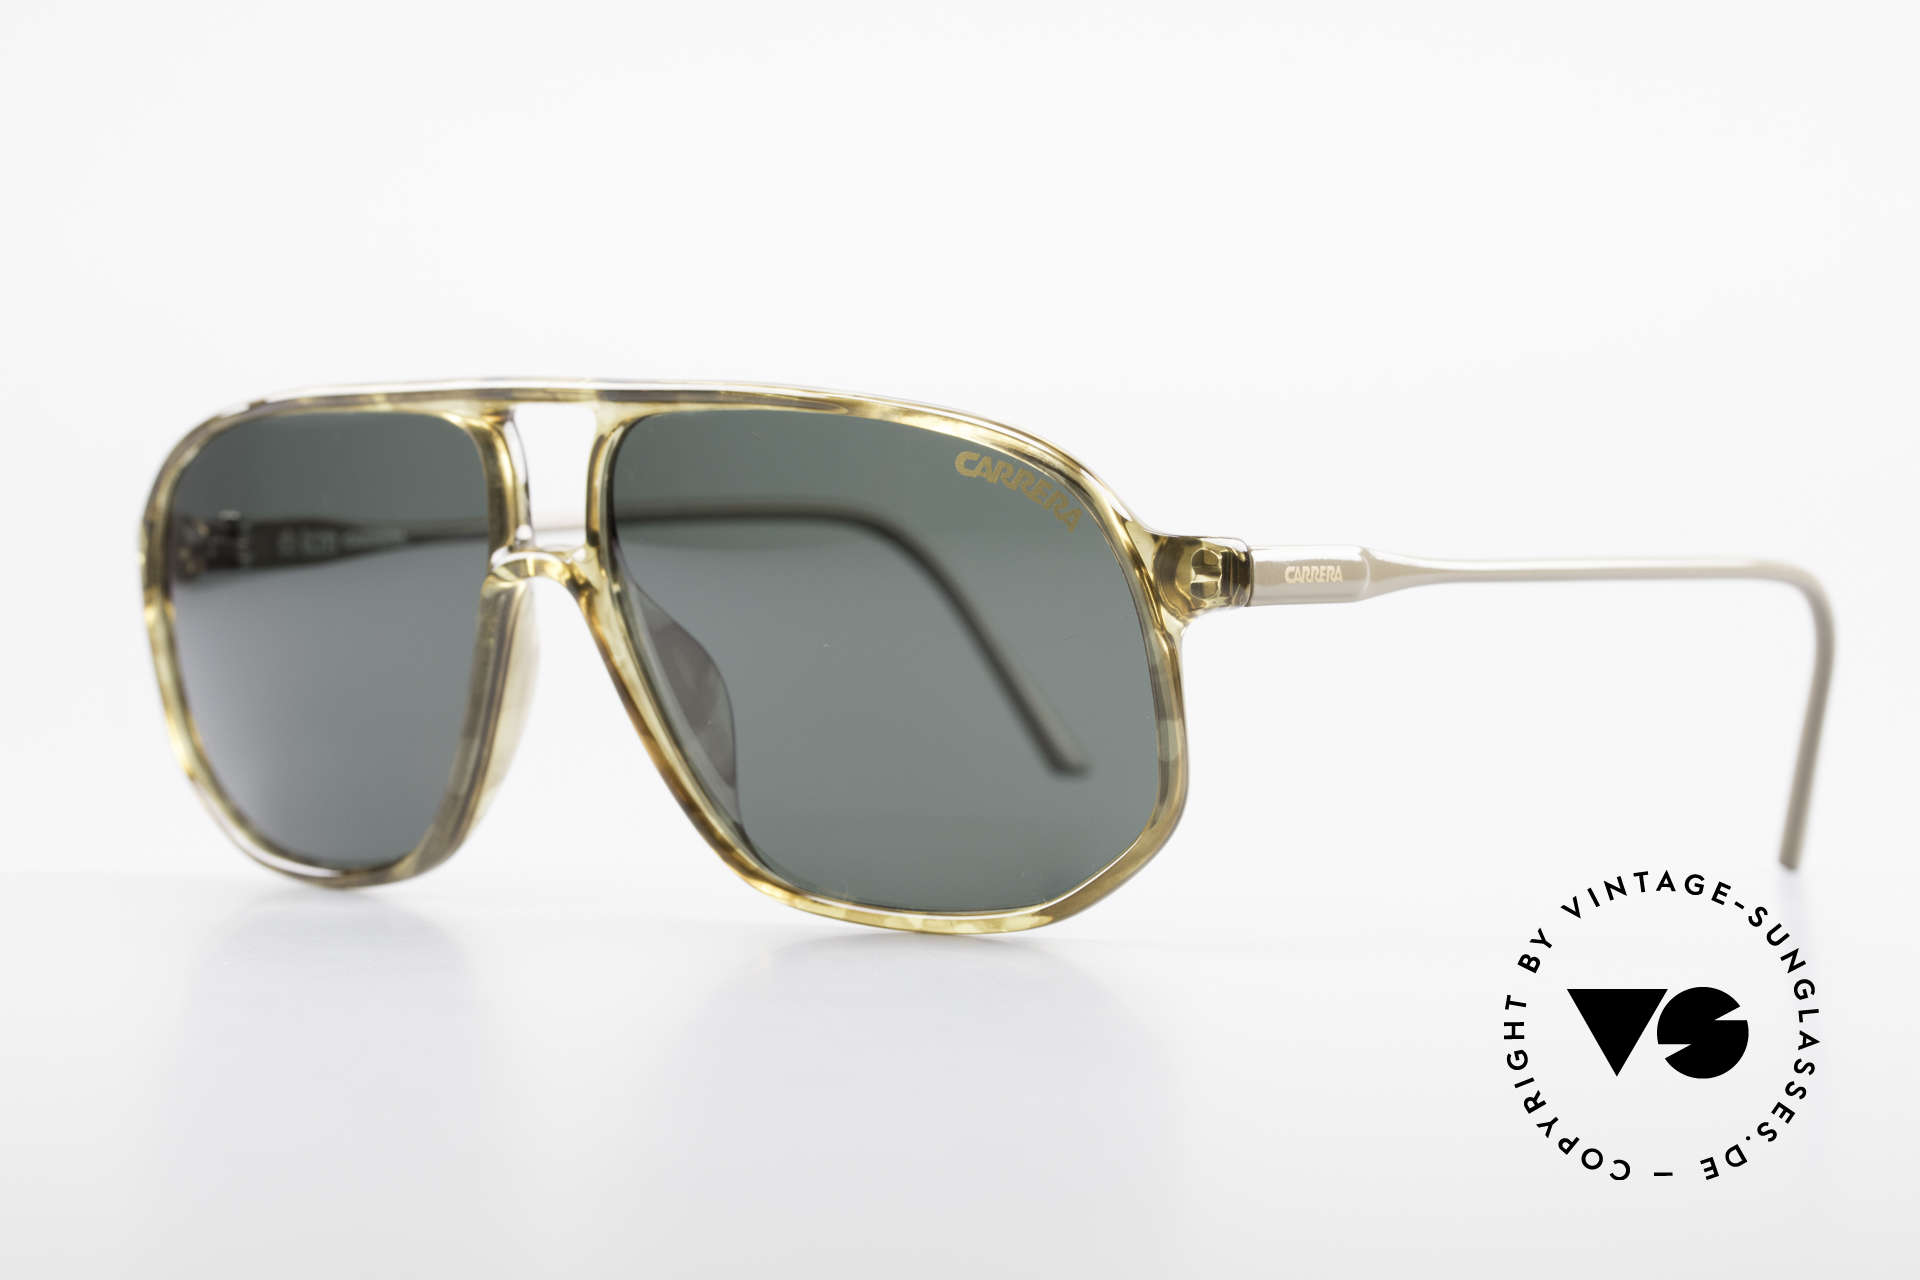 Carrera 5325 80's Carrera Sunglasses Optyl, the lightweight OPTYL material does not seem to age, Made for Men